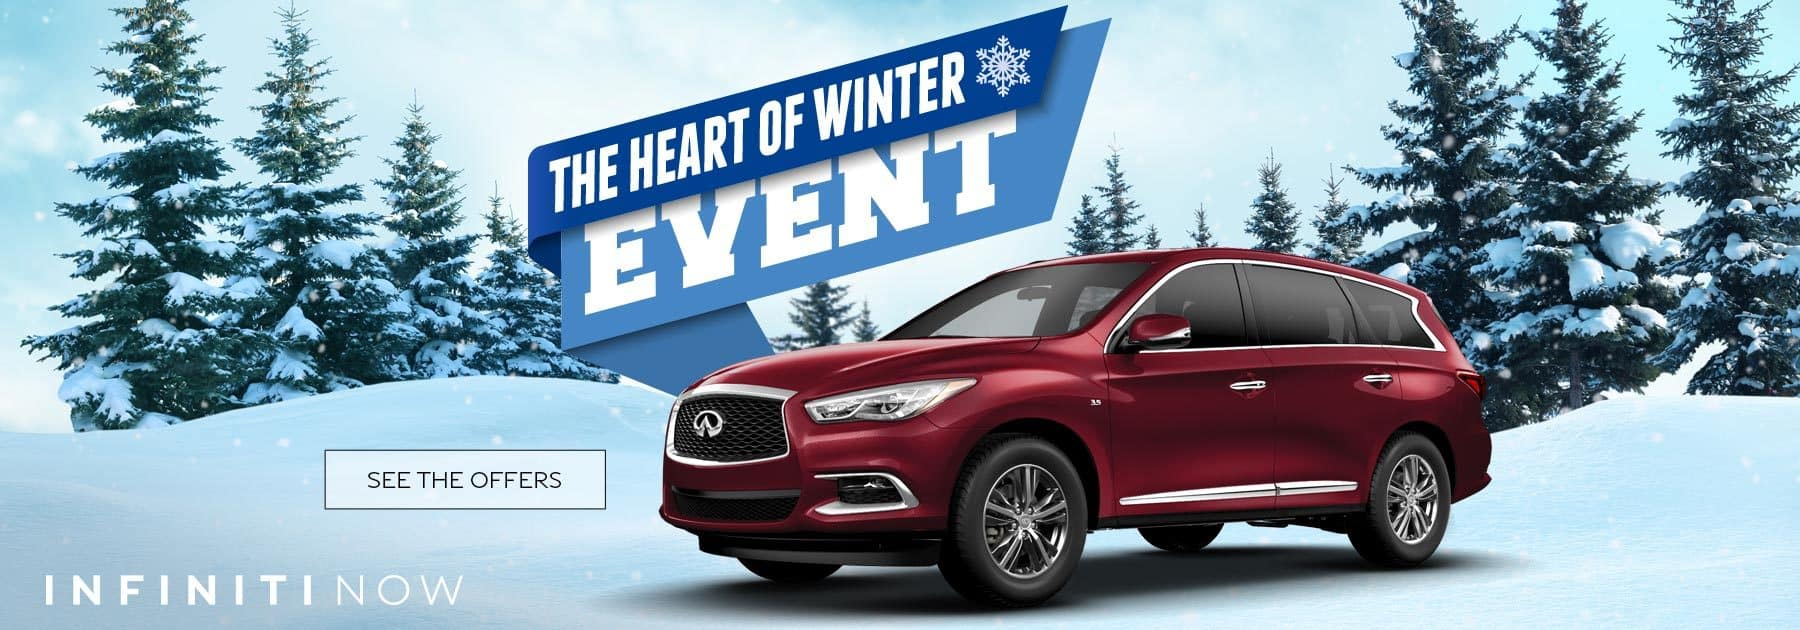 INFINITI The Heart of Winter Sales Event in NJ